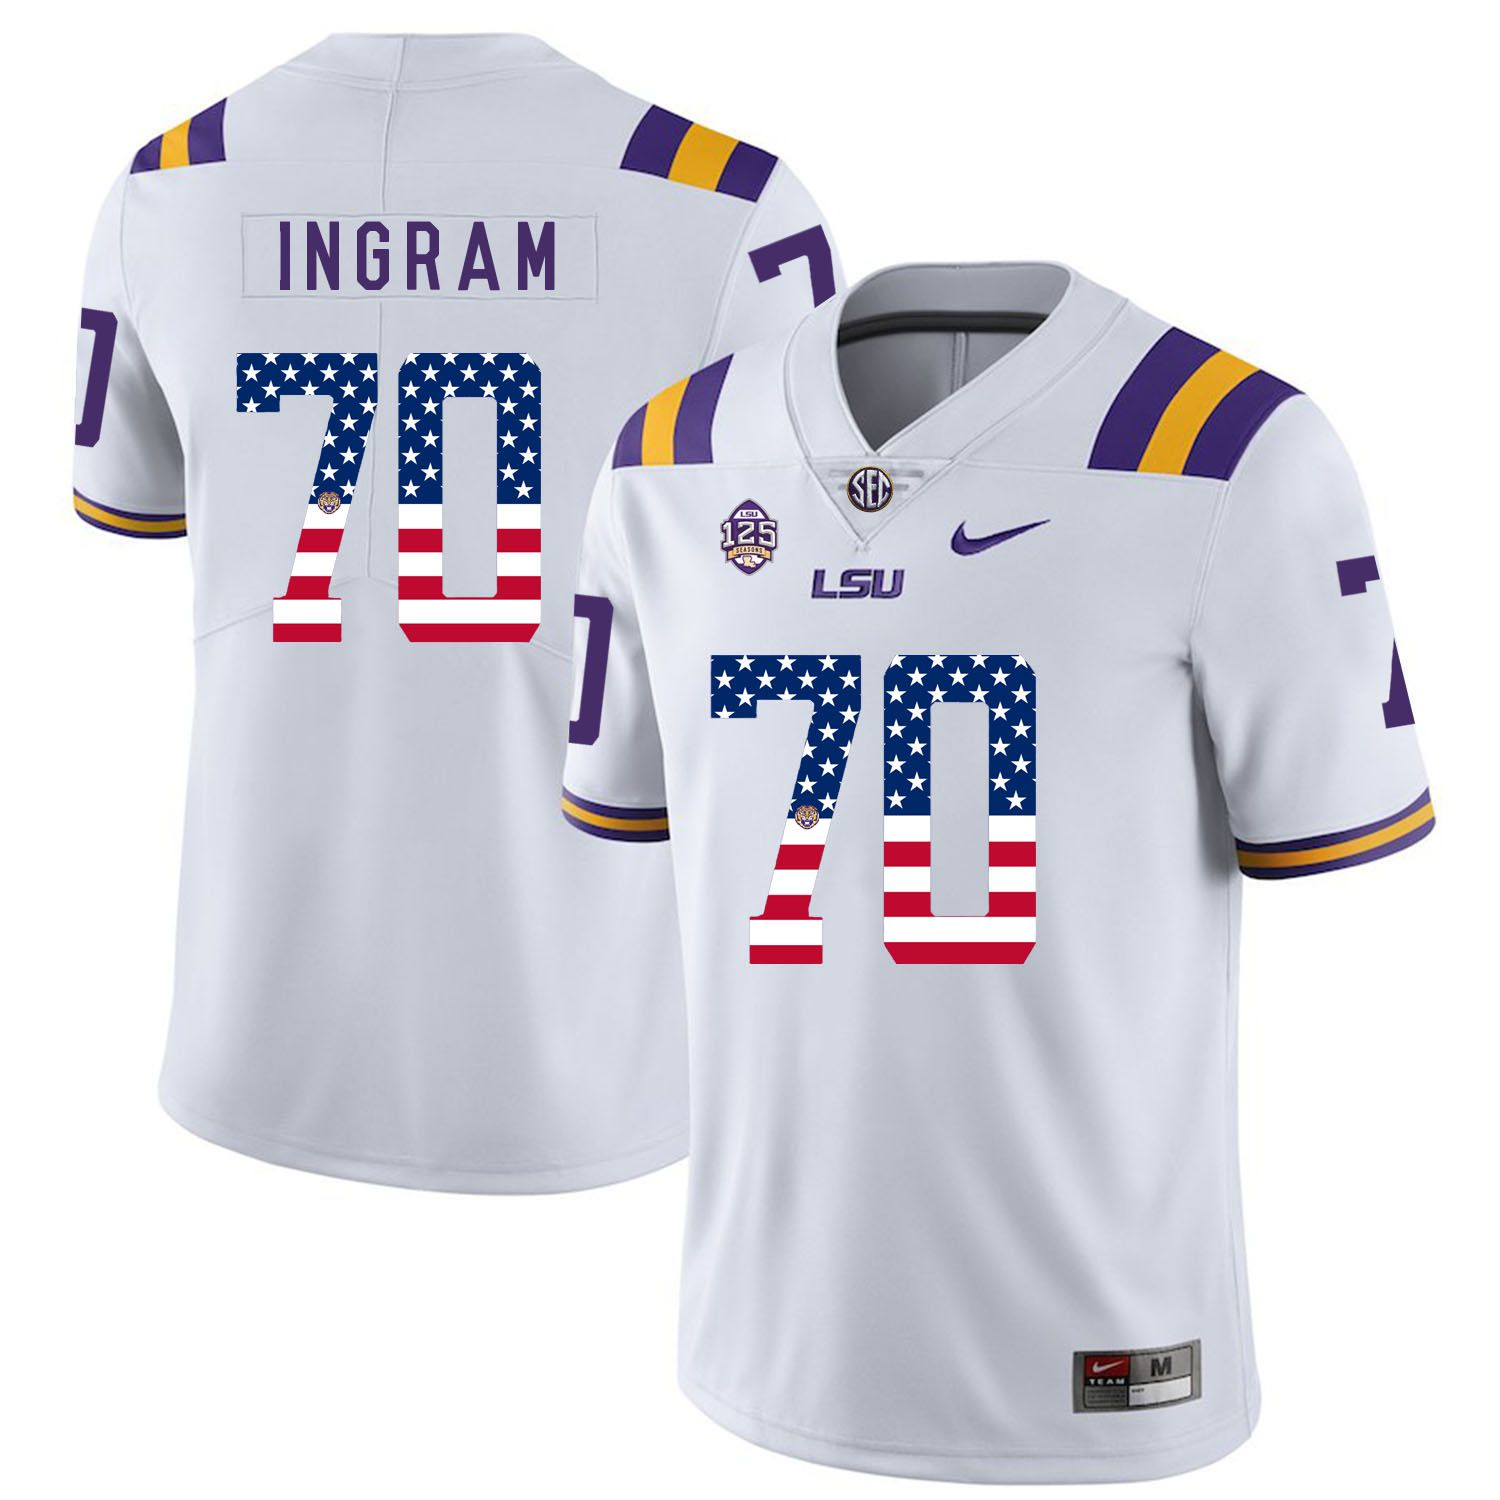 Men LSU Tigers 70 Ingram White Flag Customized NCAA Jerseys